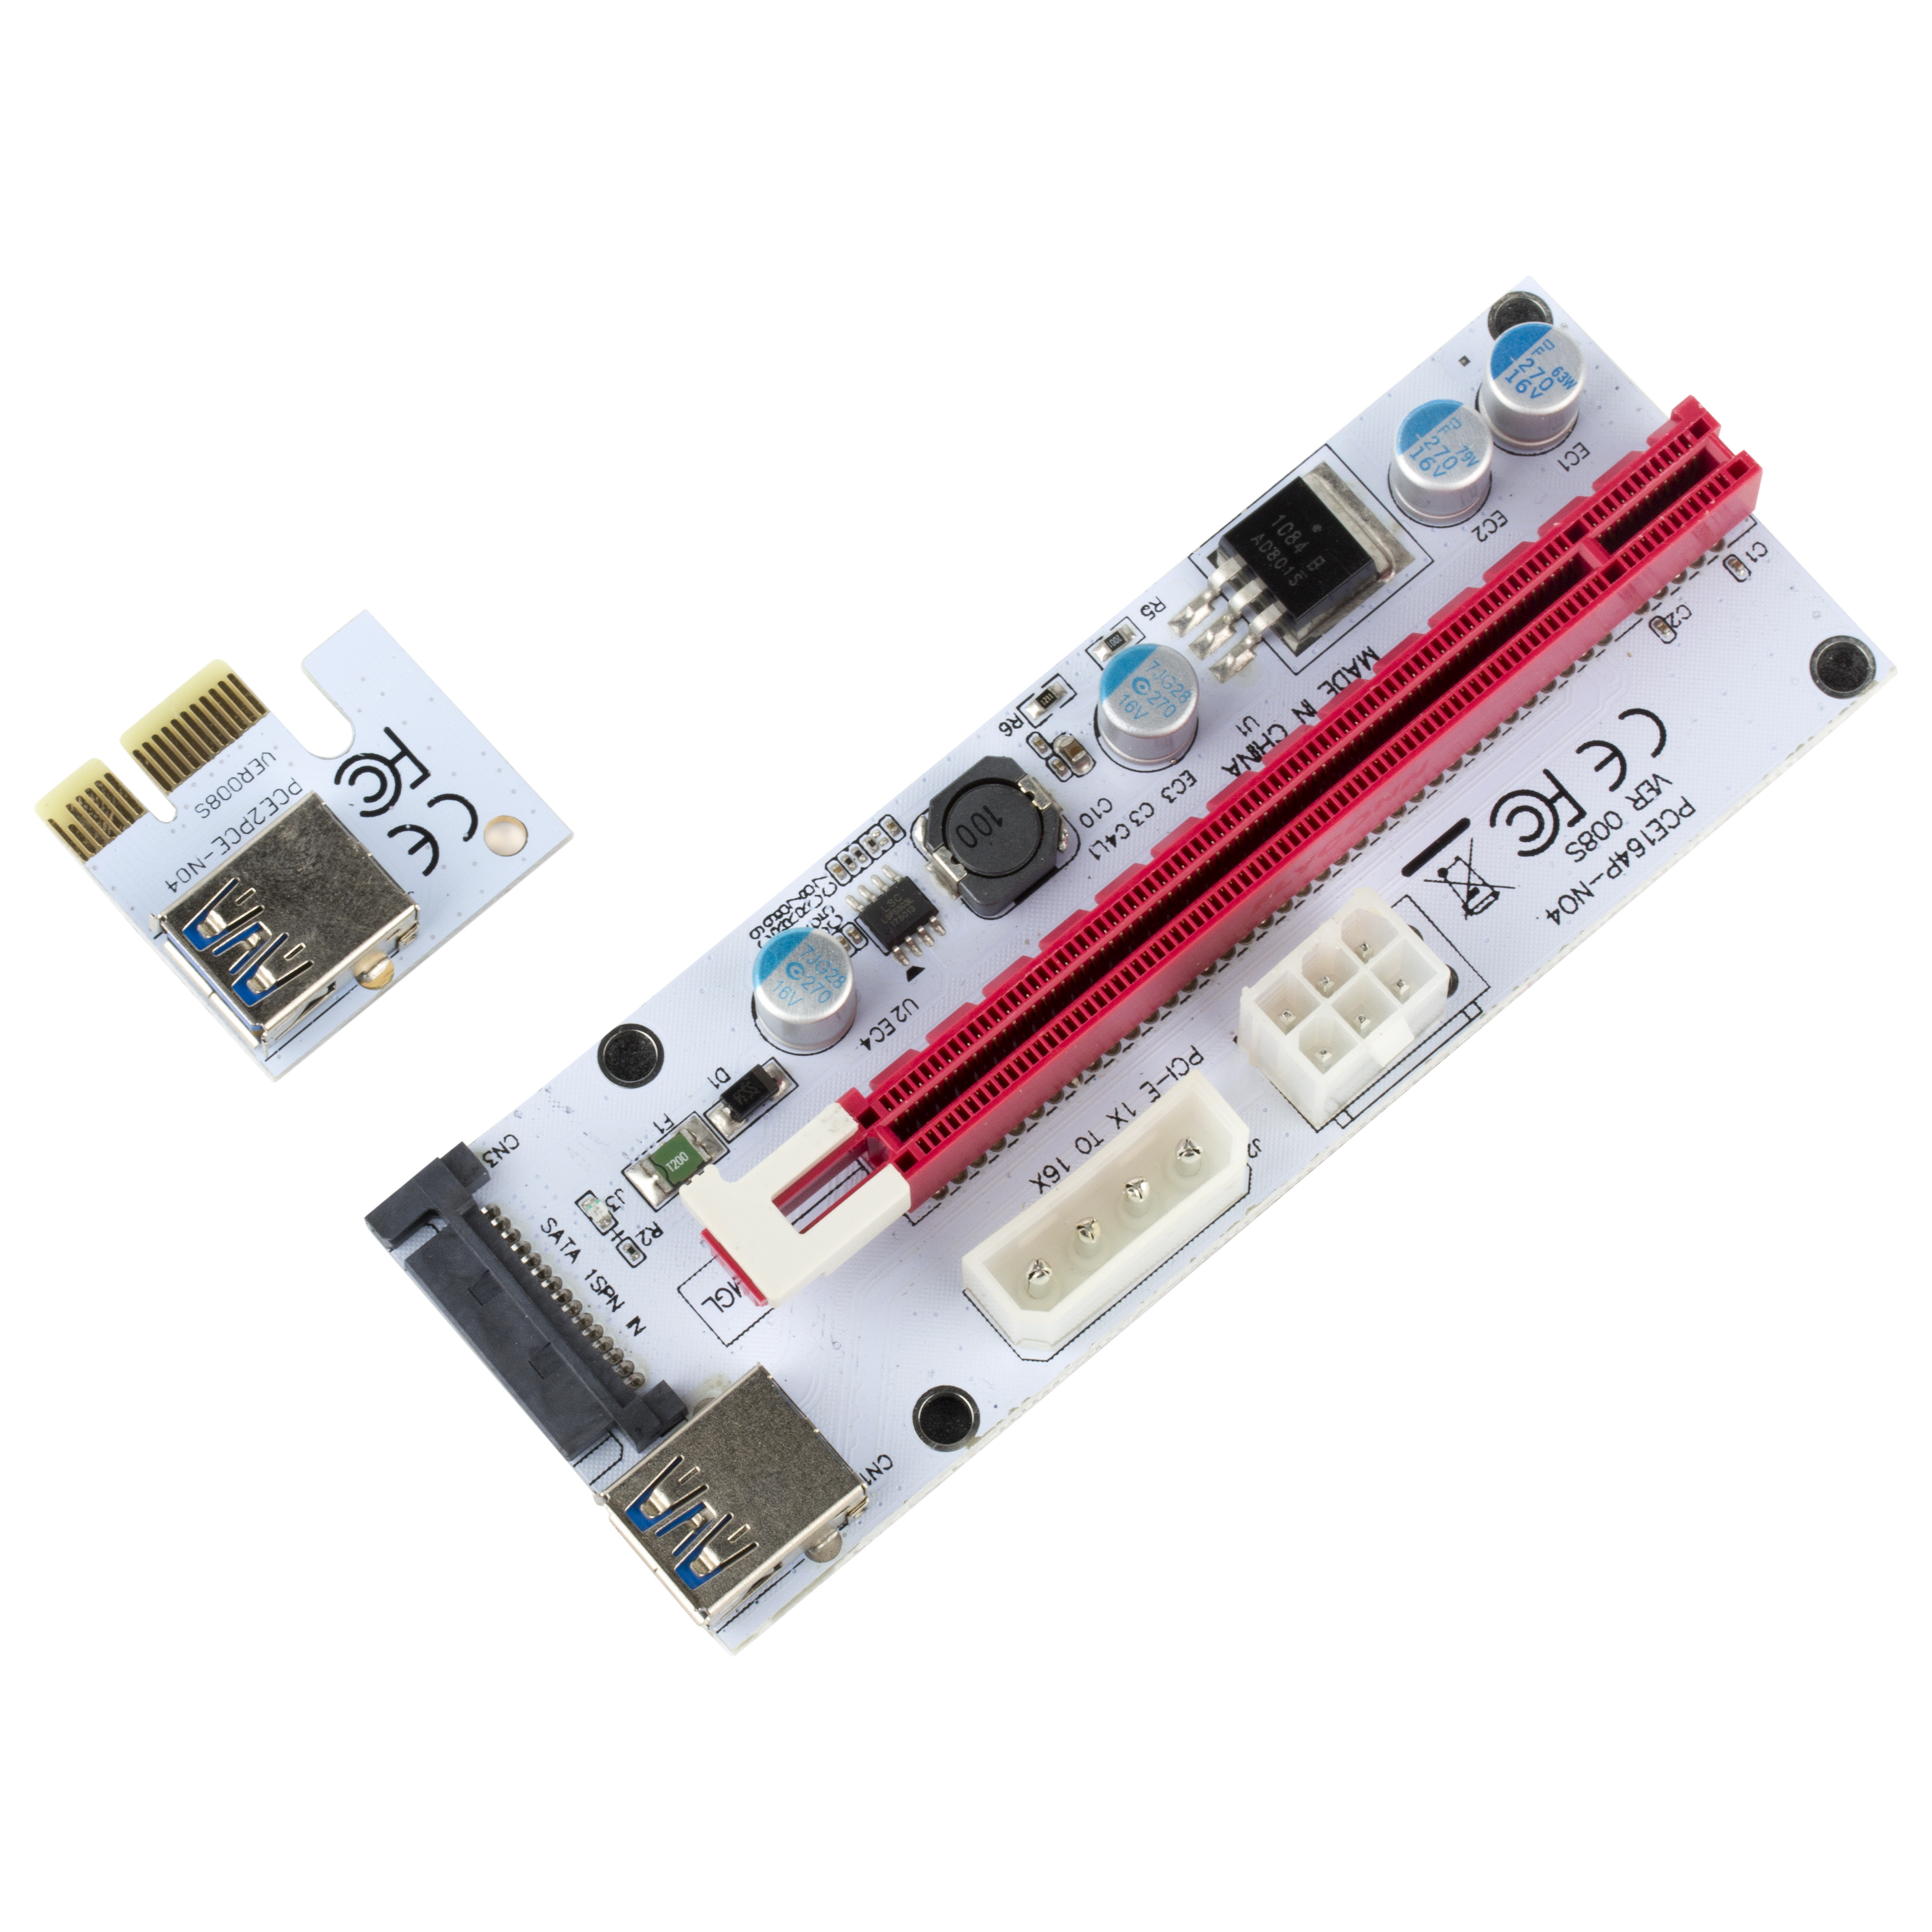 x1 PCIe to Dual PCIe x16 2 Slots Adapter Card PCI-Express Riser